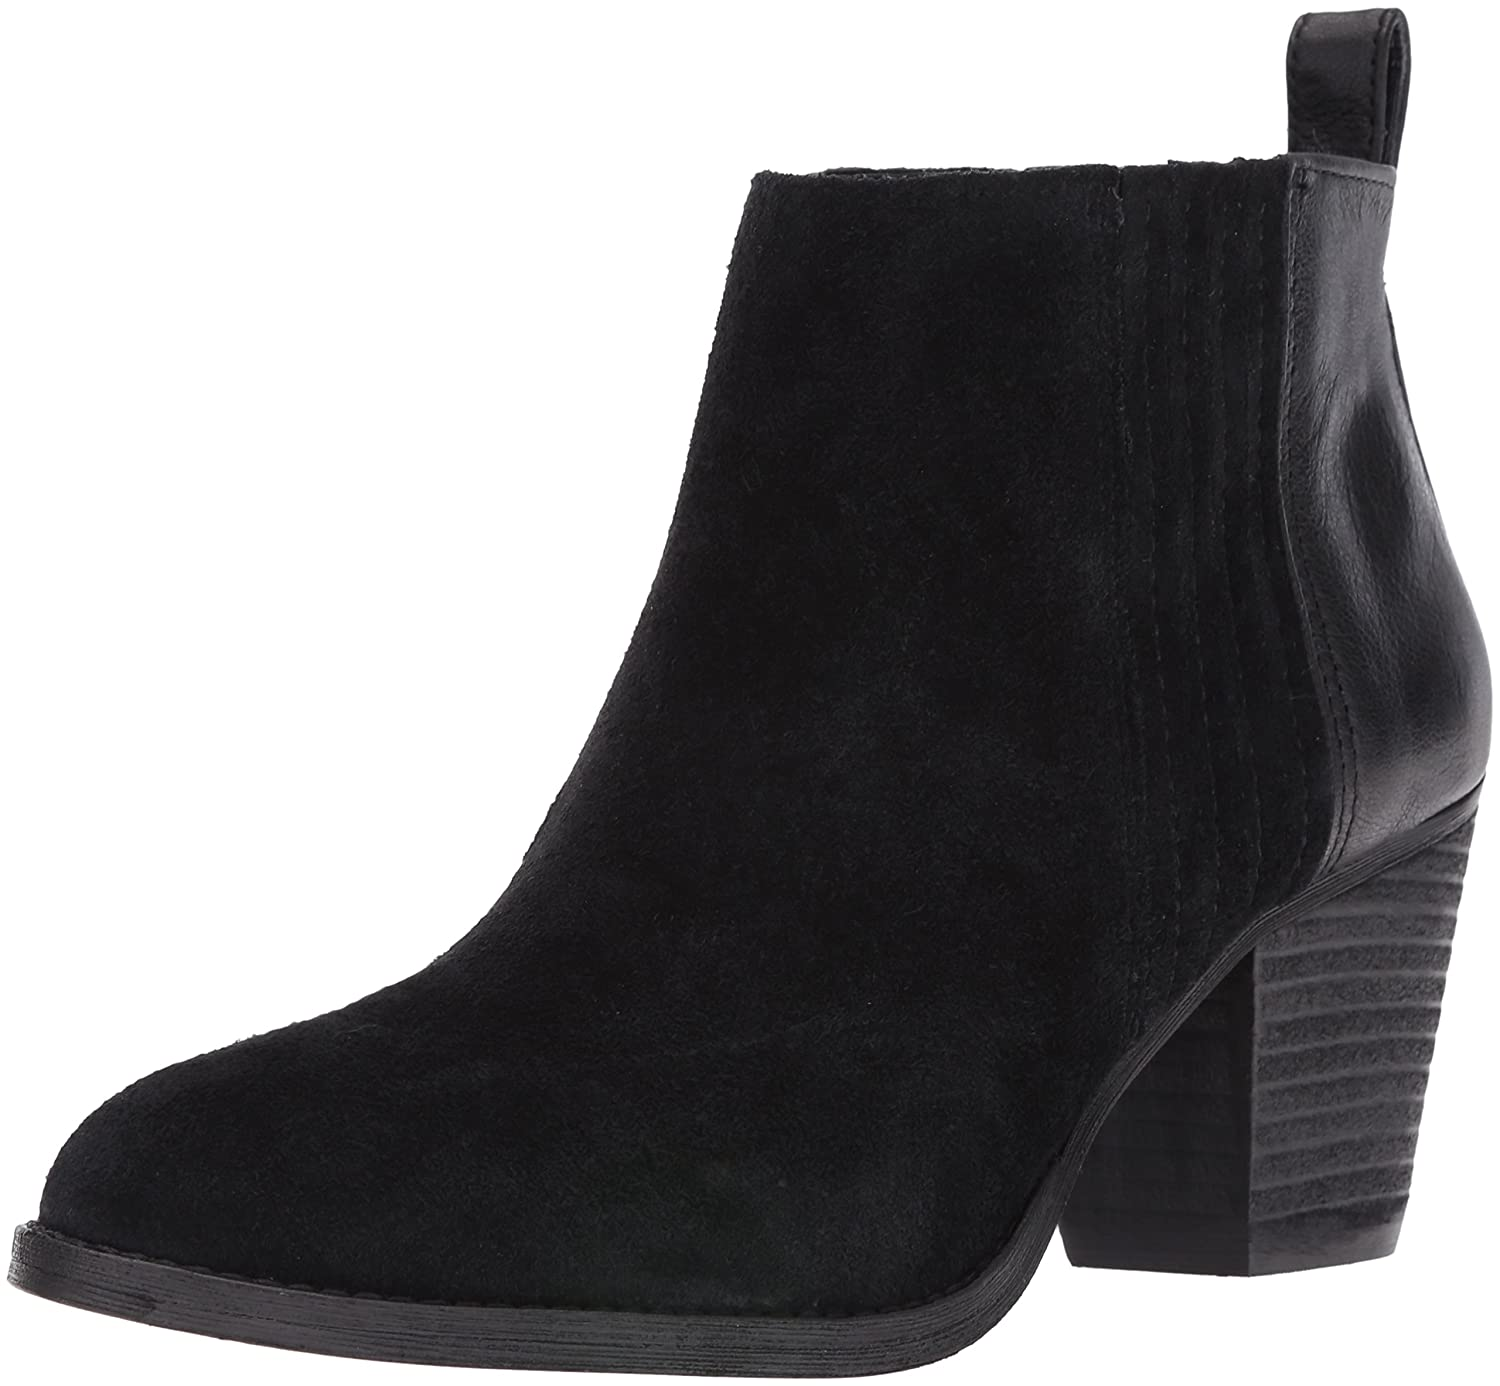 Nine West Women's Fiffi Ankle Bootie B01EWYJ2NU 8 B(M) US|Black